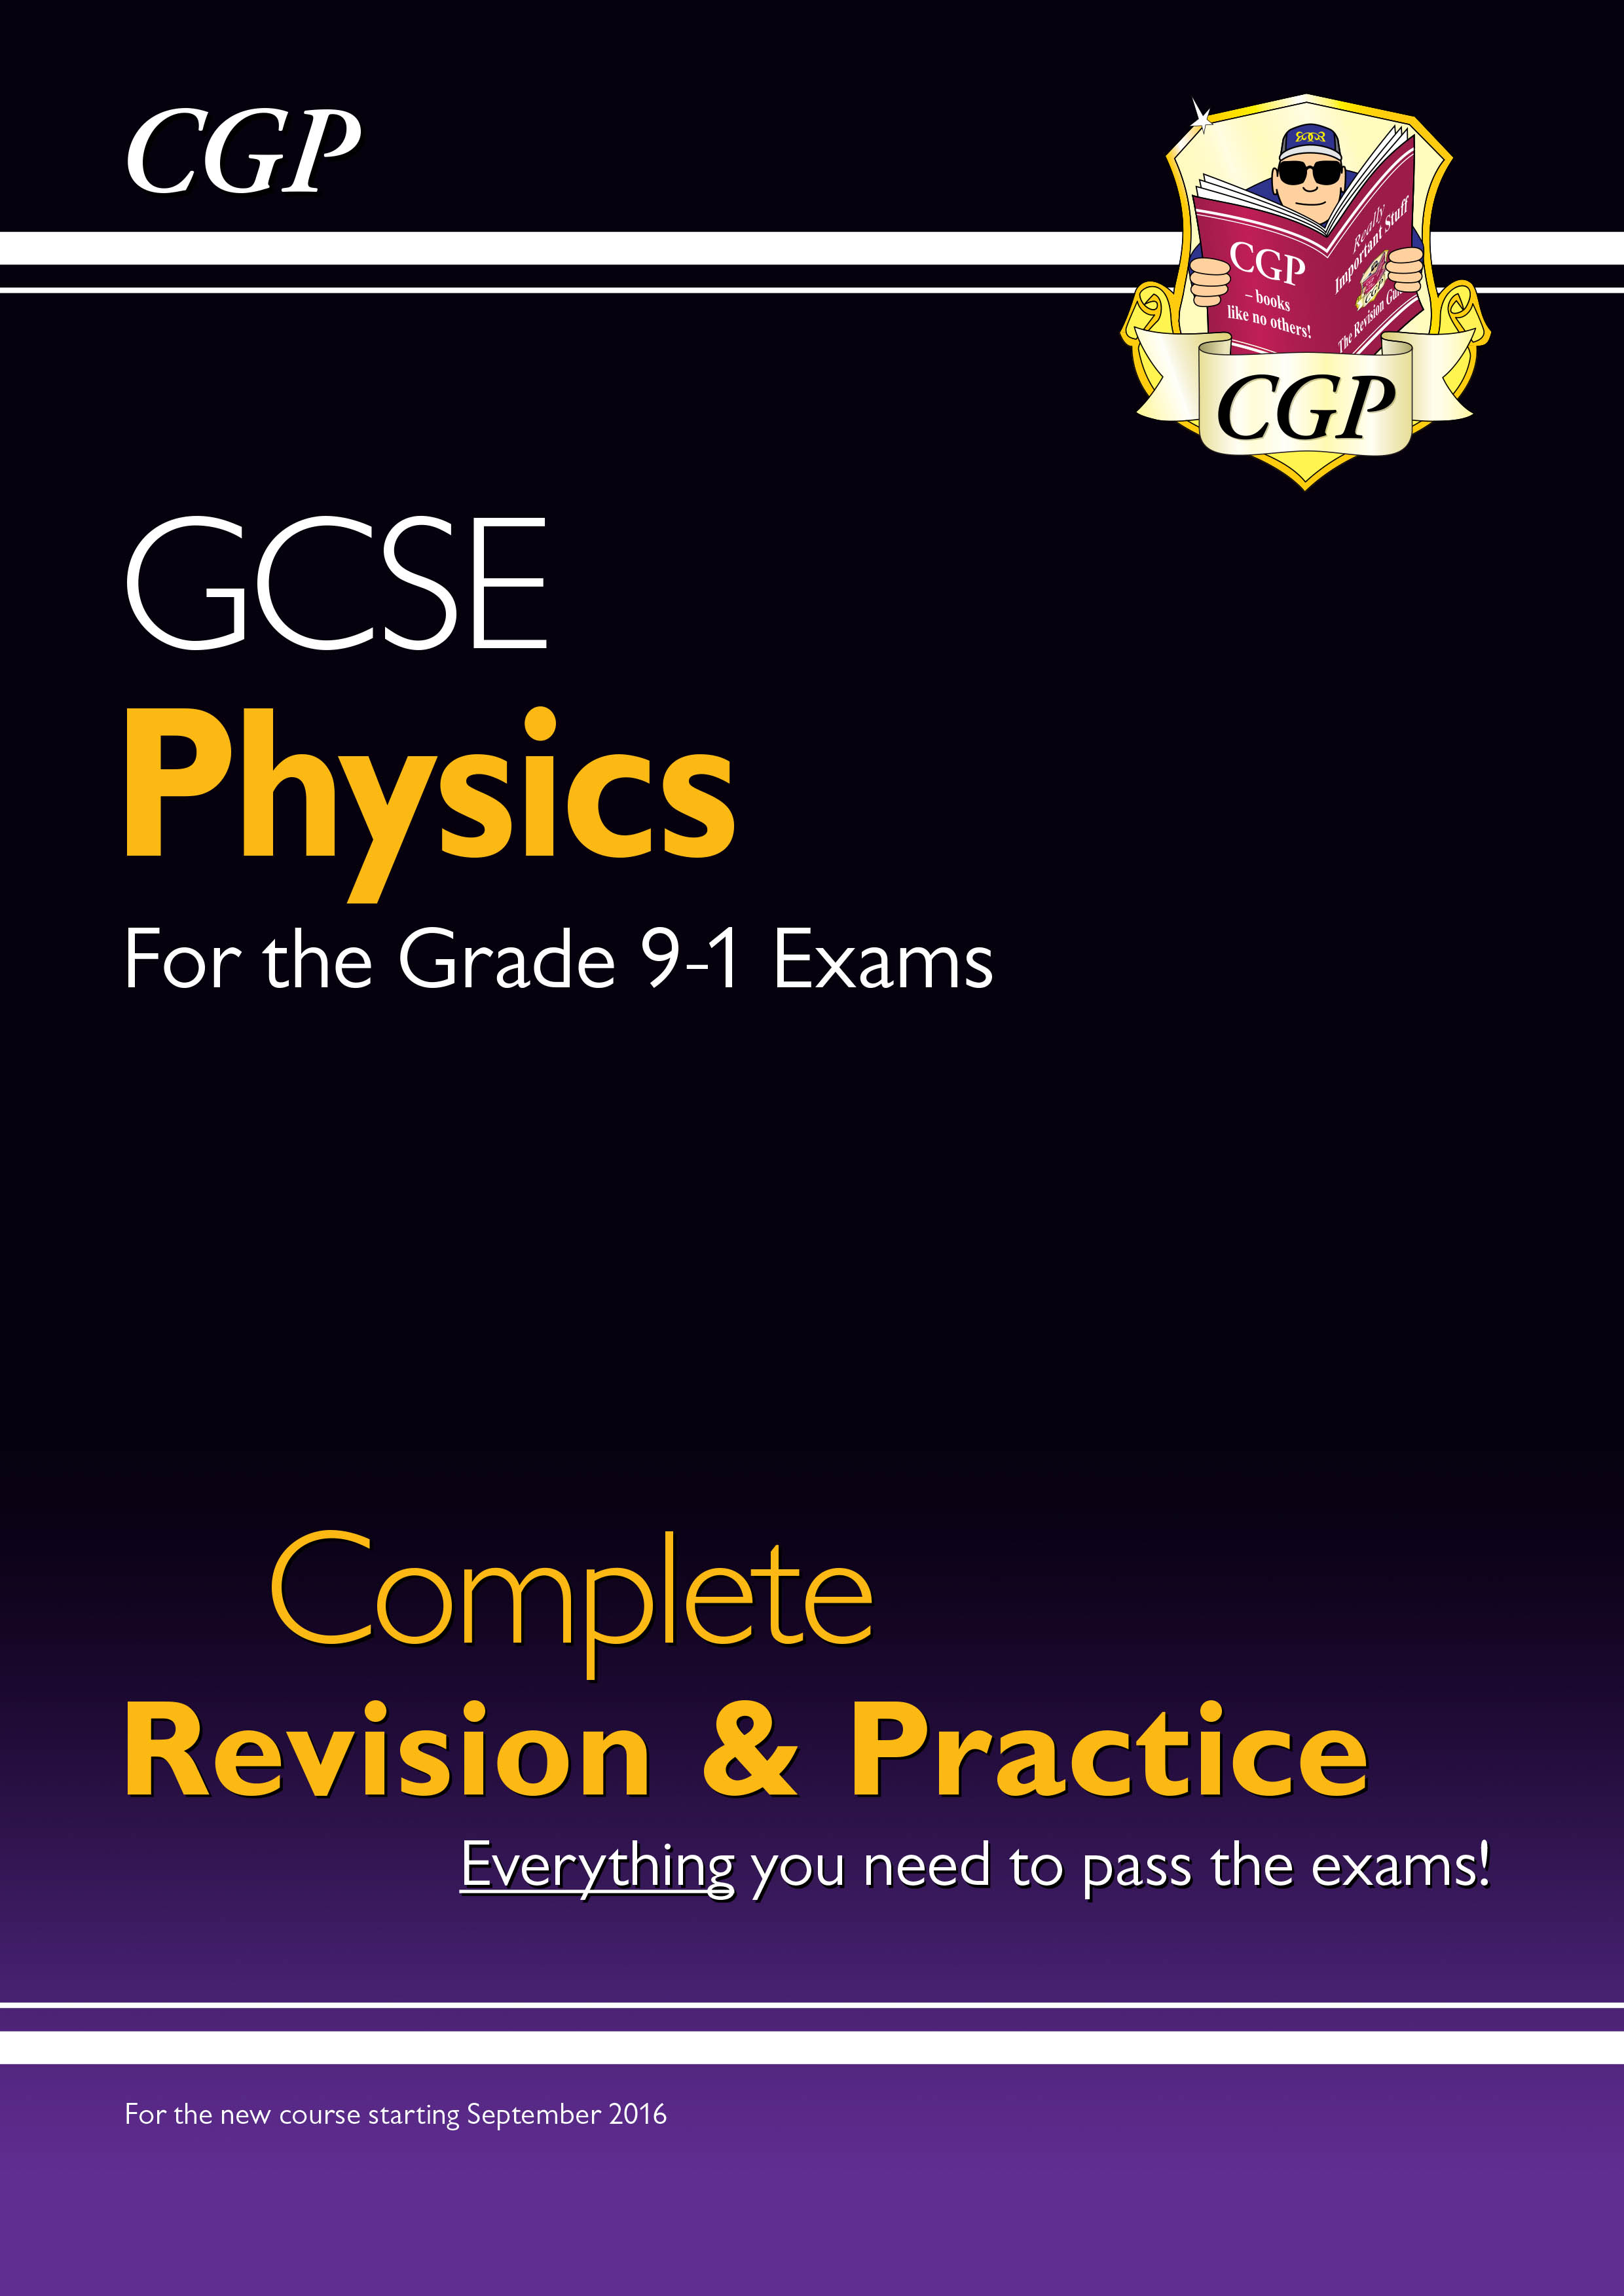 PHS45DK - New Grade 9-1 GCSE Physics Complete Revision & Practice